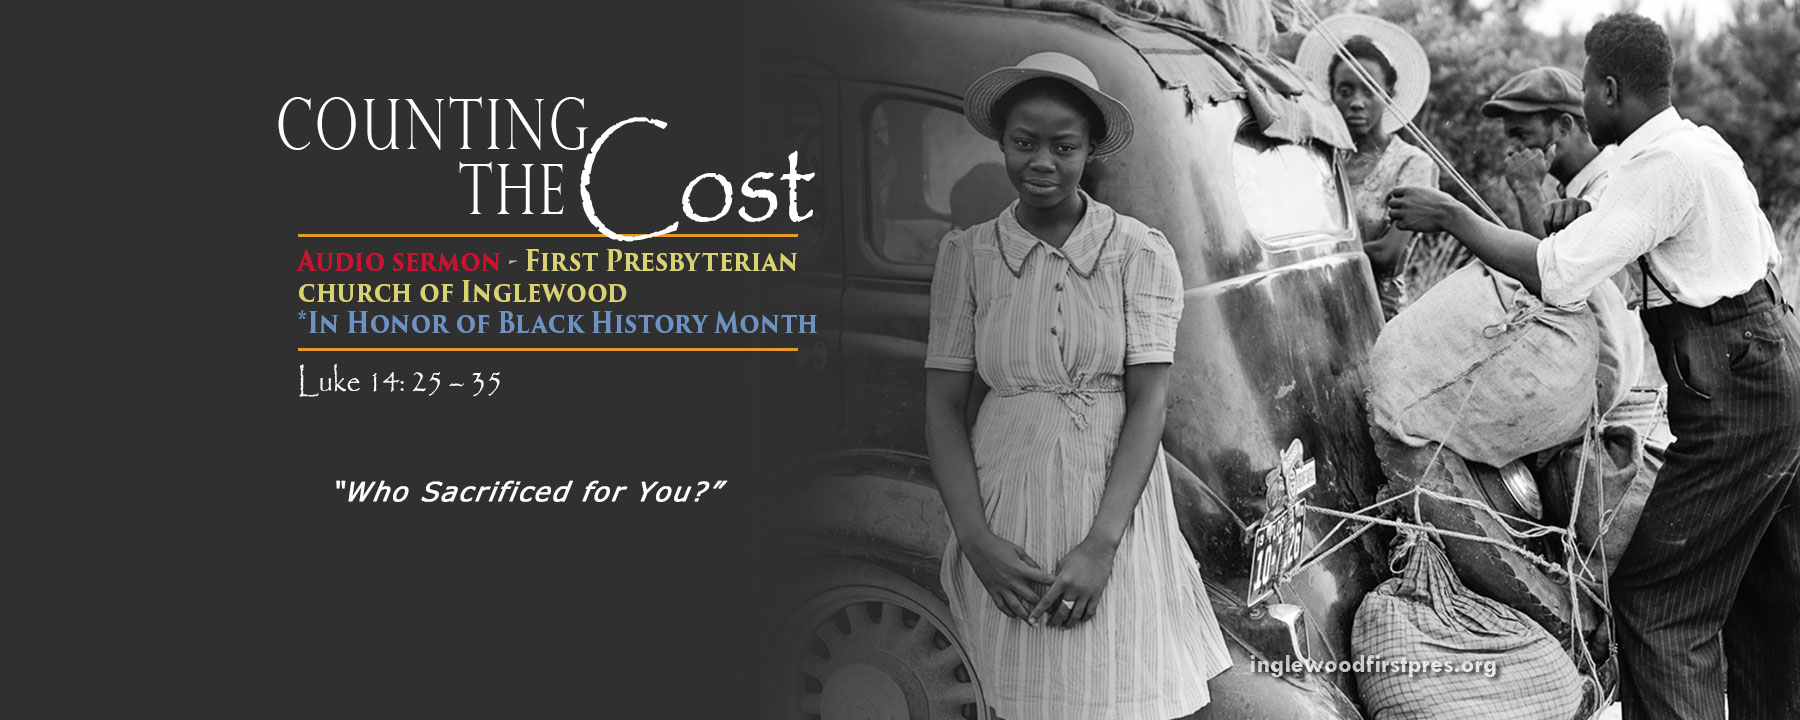 Audio Sermon: Counting the Cost (Black History Month)